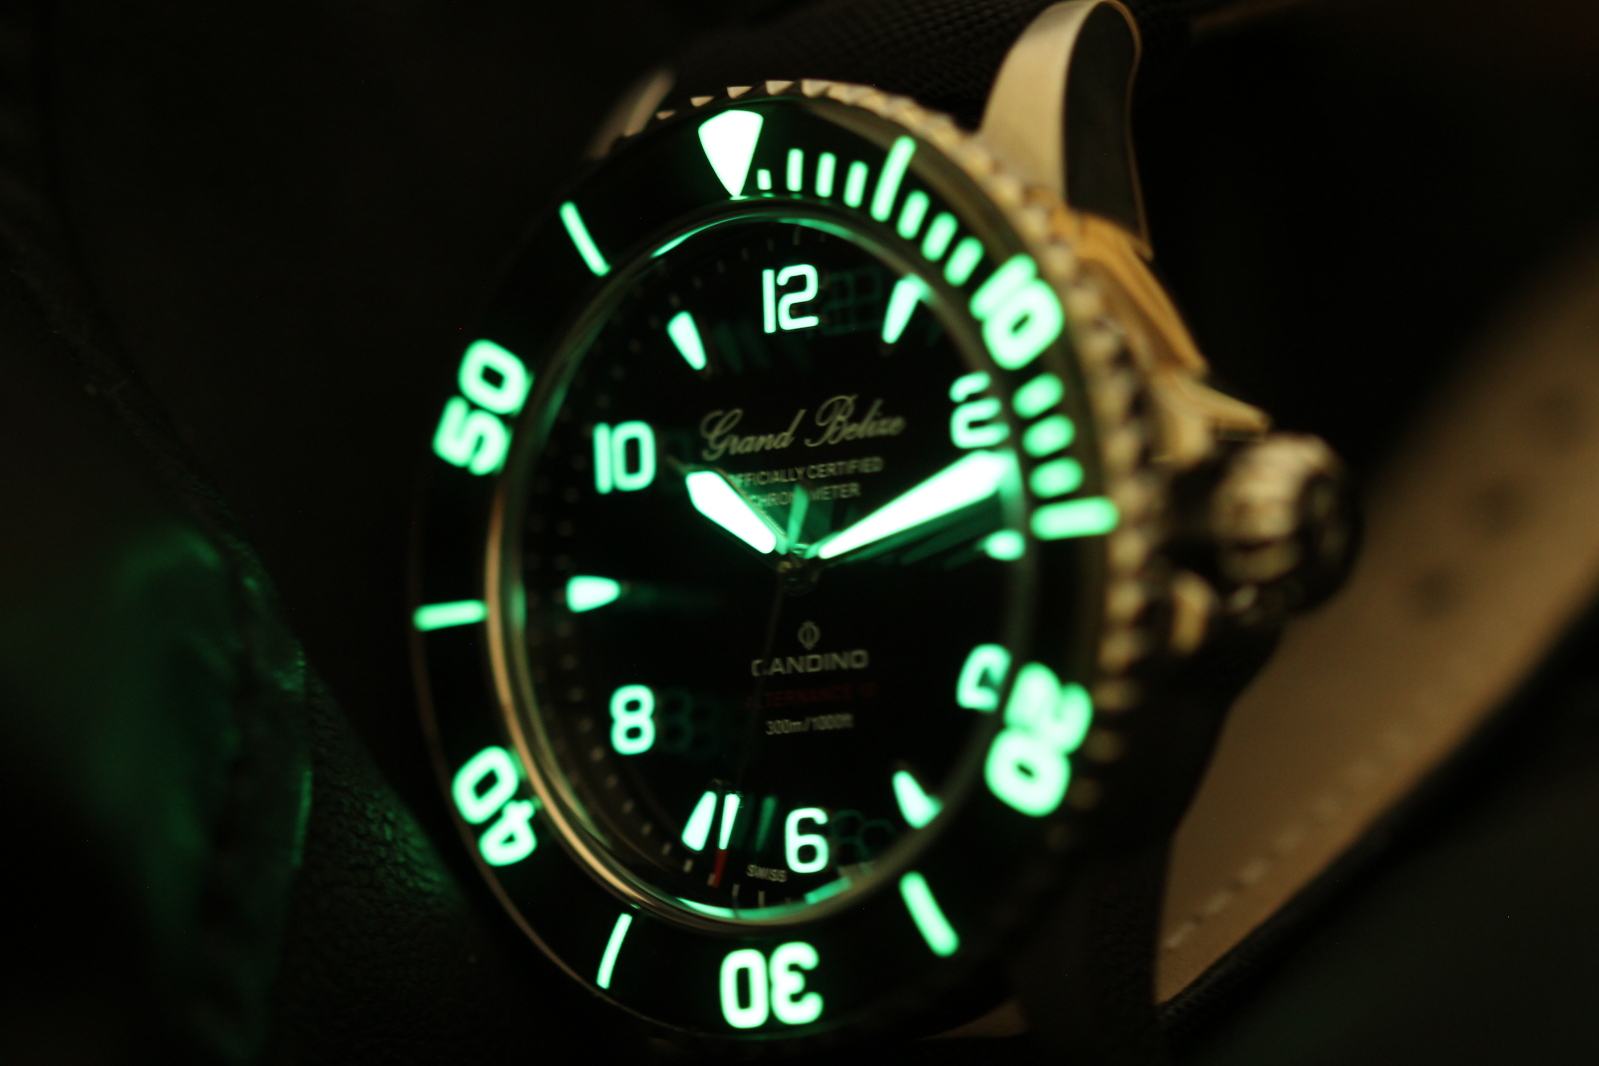 Grand Belize watch